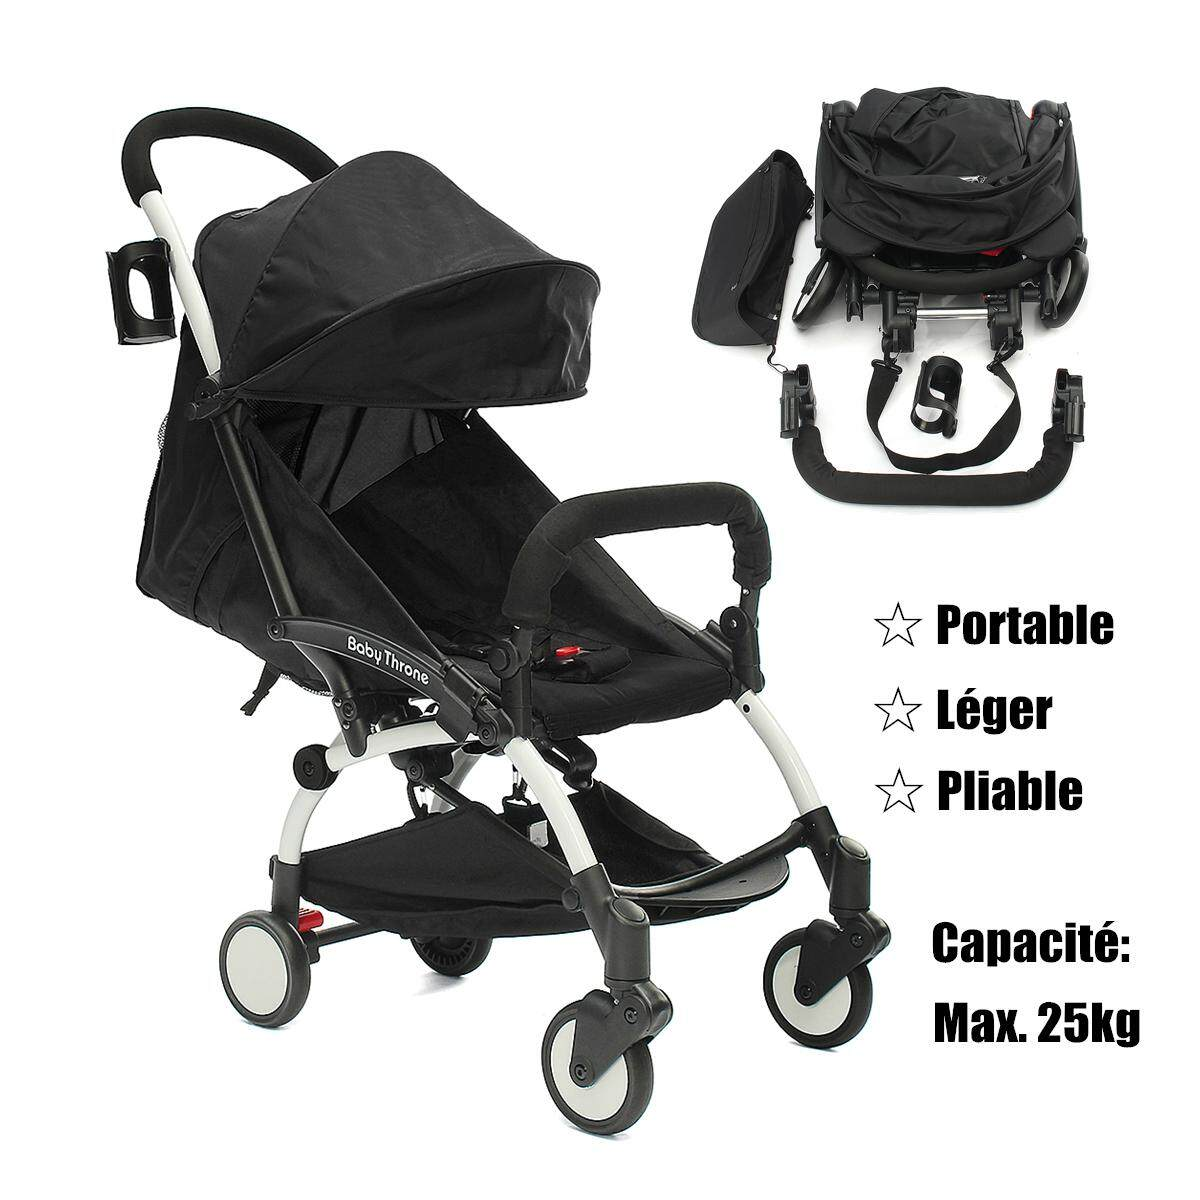 Lightweight Folding Pram Portable Baby Stroller Folding Lightweight Toddler Travel Buggy Infant Carriage Intl Singapore